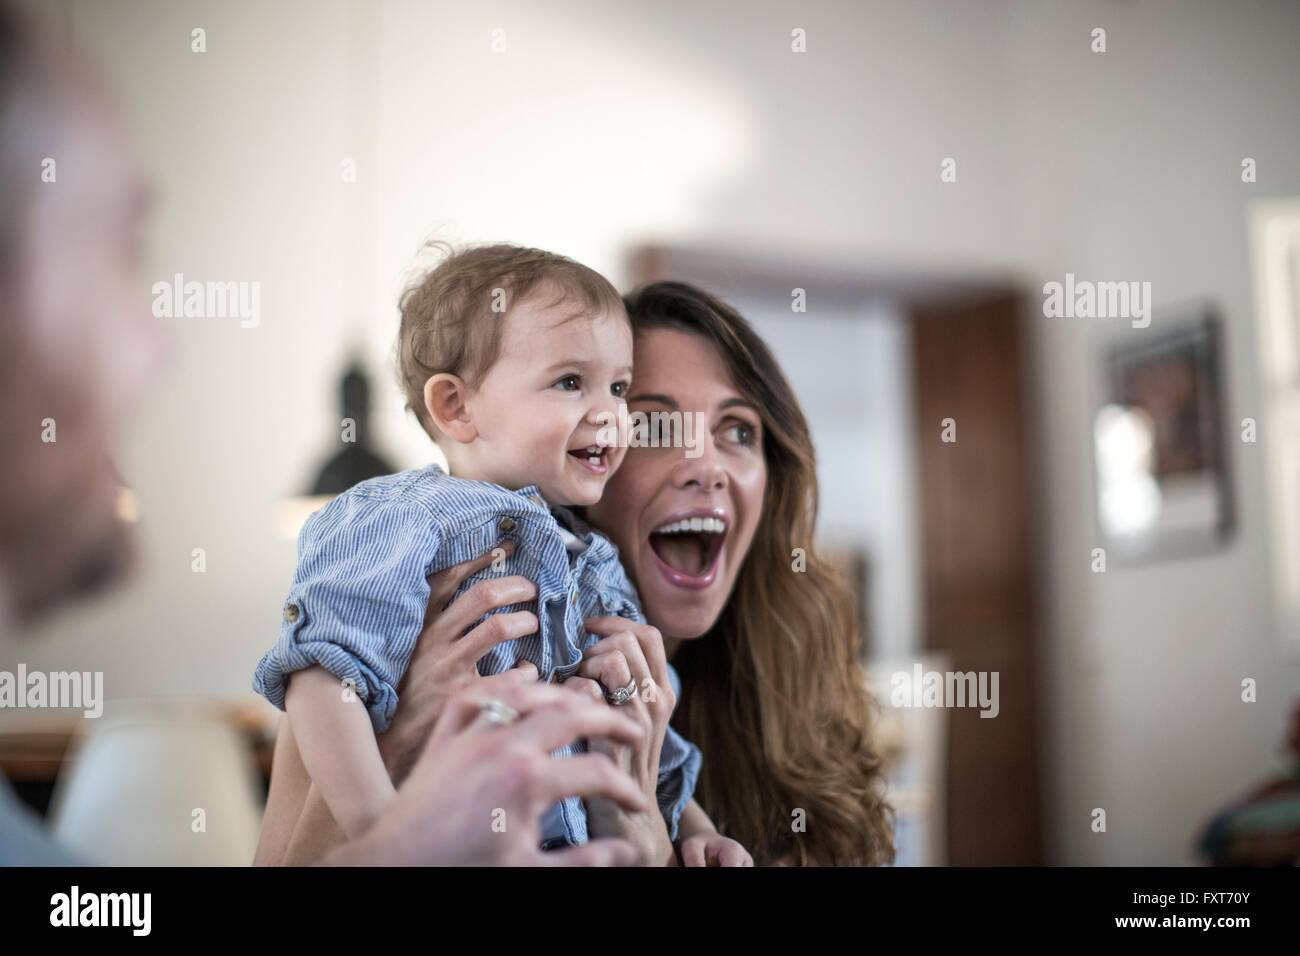 Mother smiling baby boy, ouvrir la bouche de surprise Photo Stock